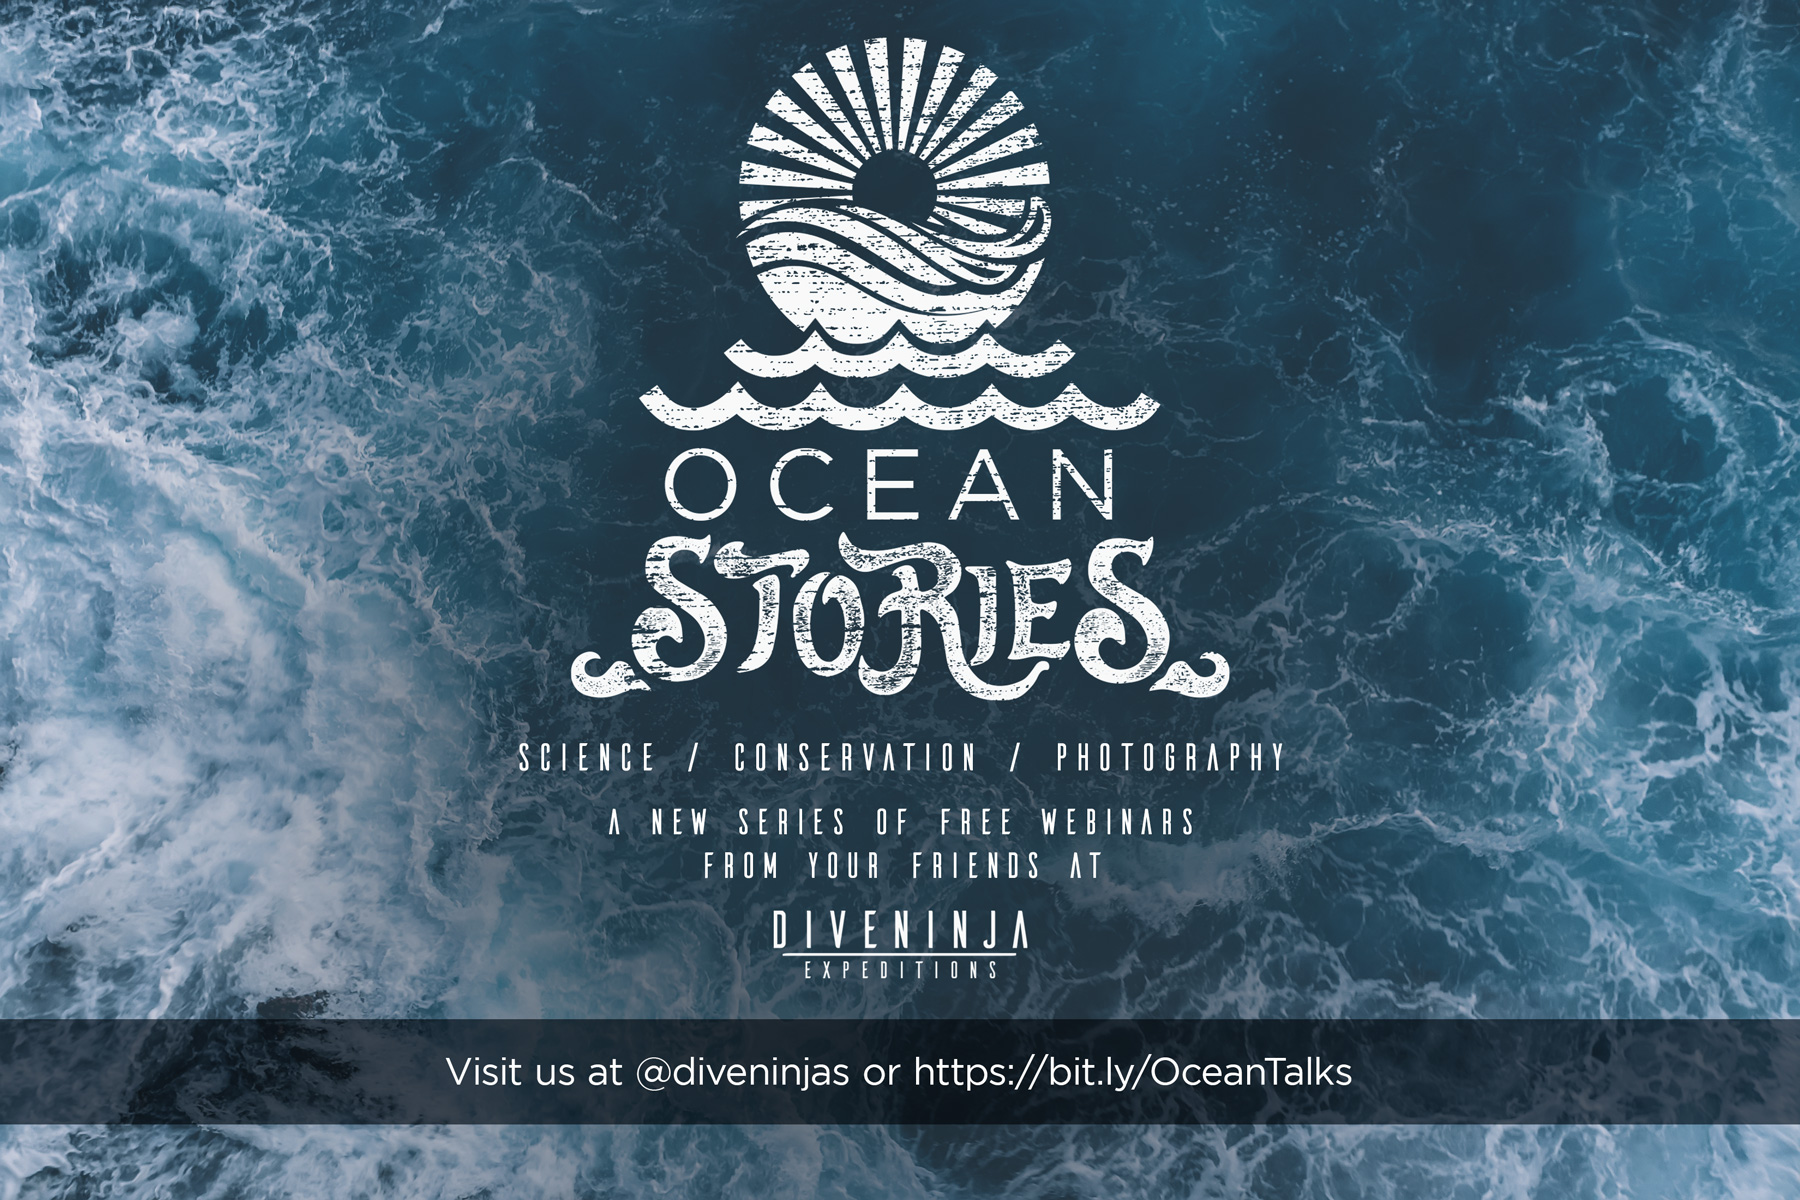 Ocean Stories Freewebinars